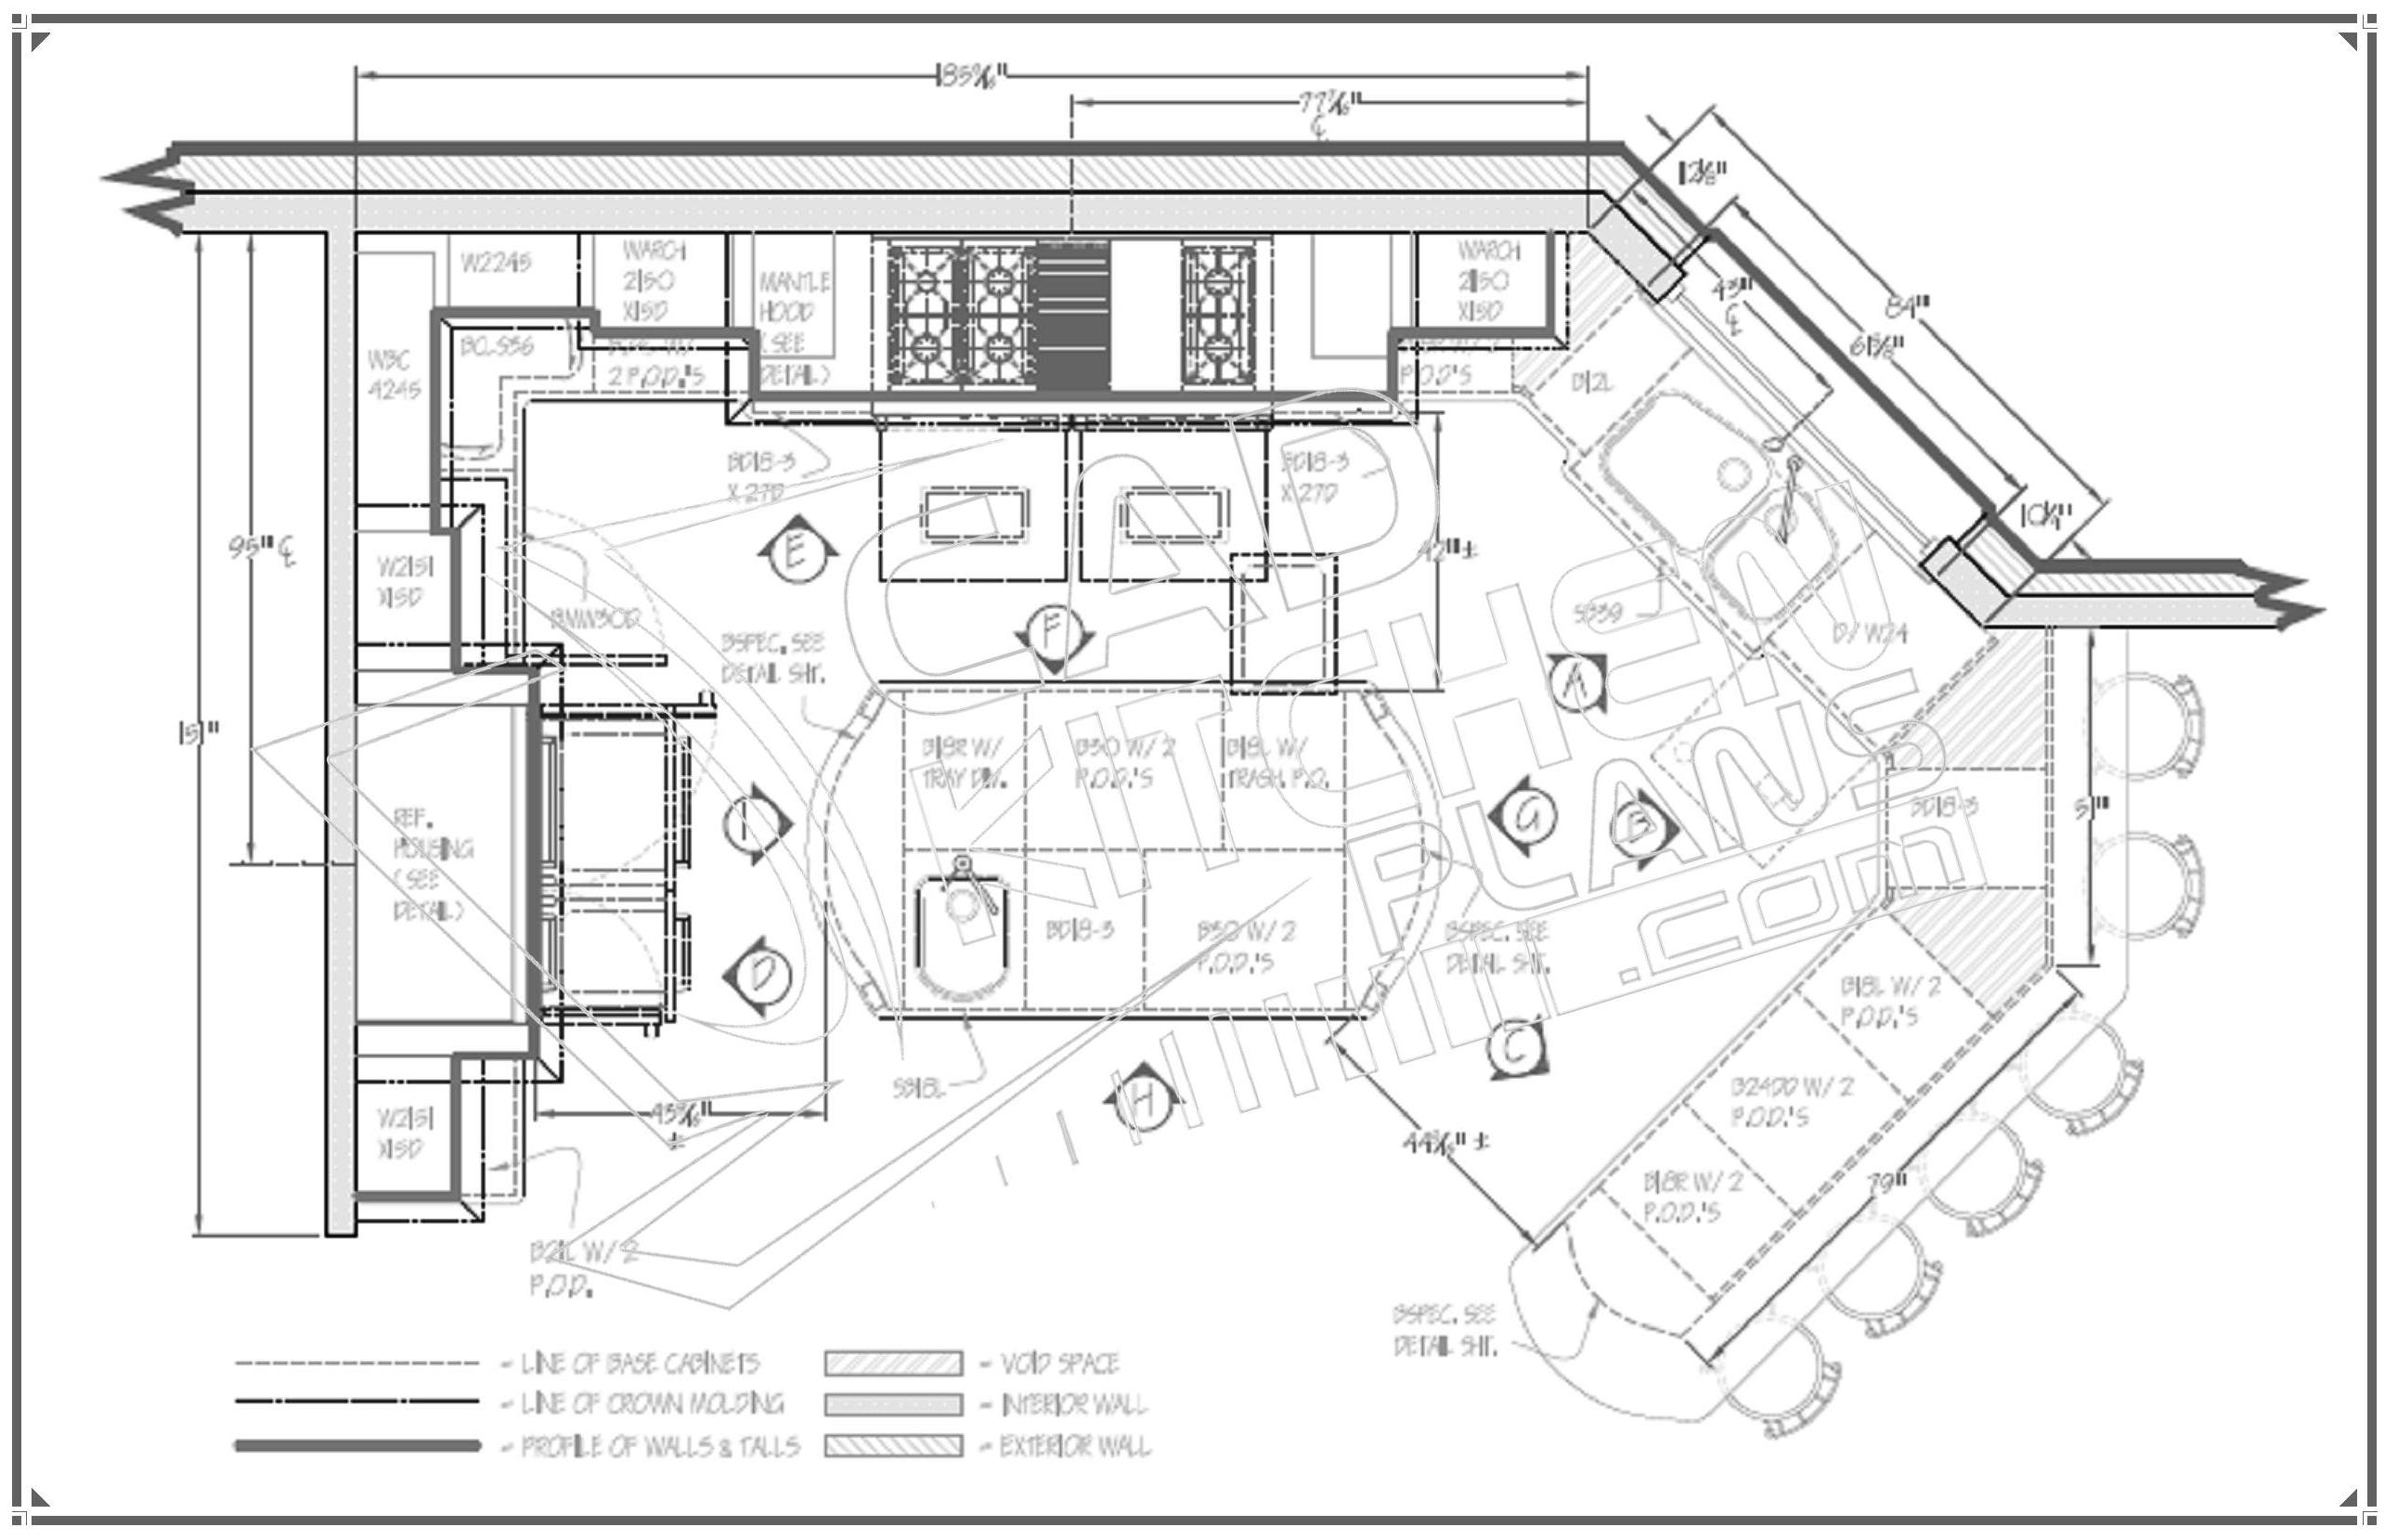 Restaurant kitchen plans design afreakatheart for U kitchen floor plan